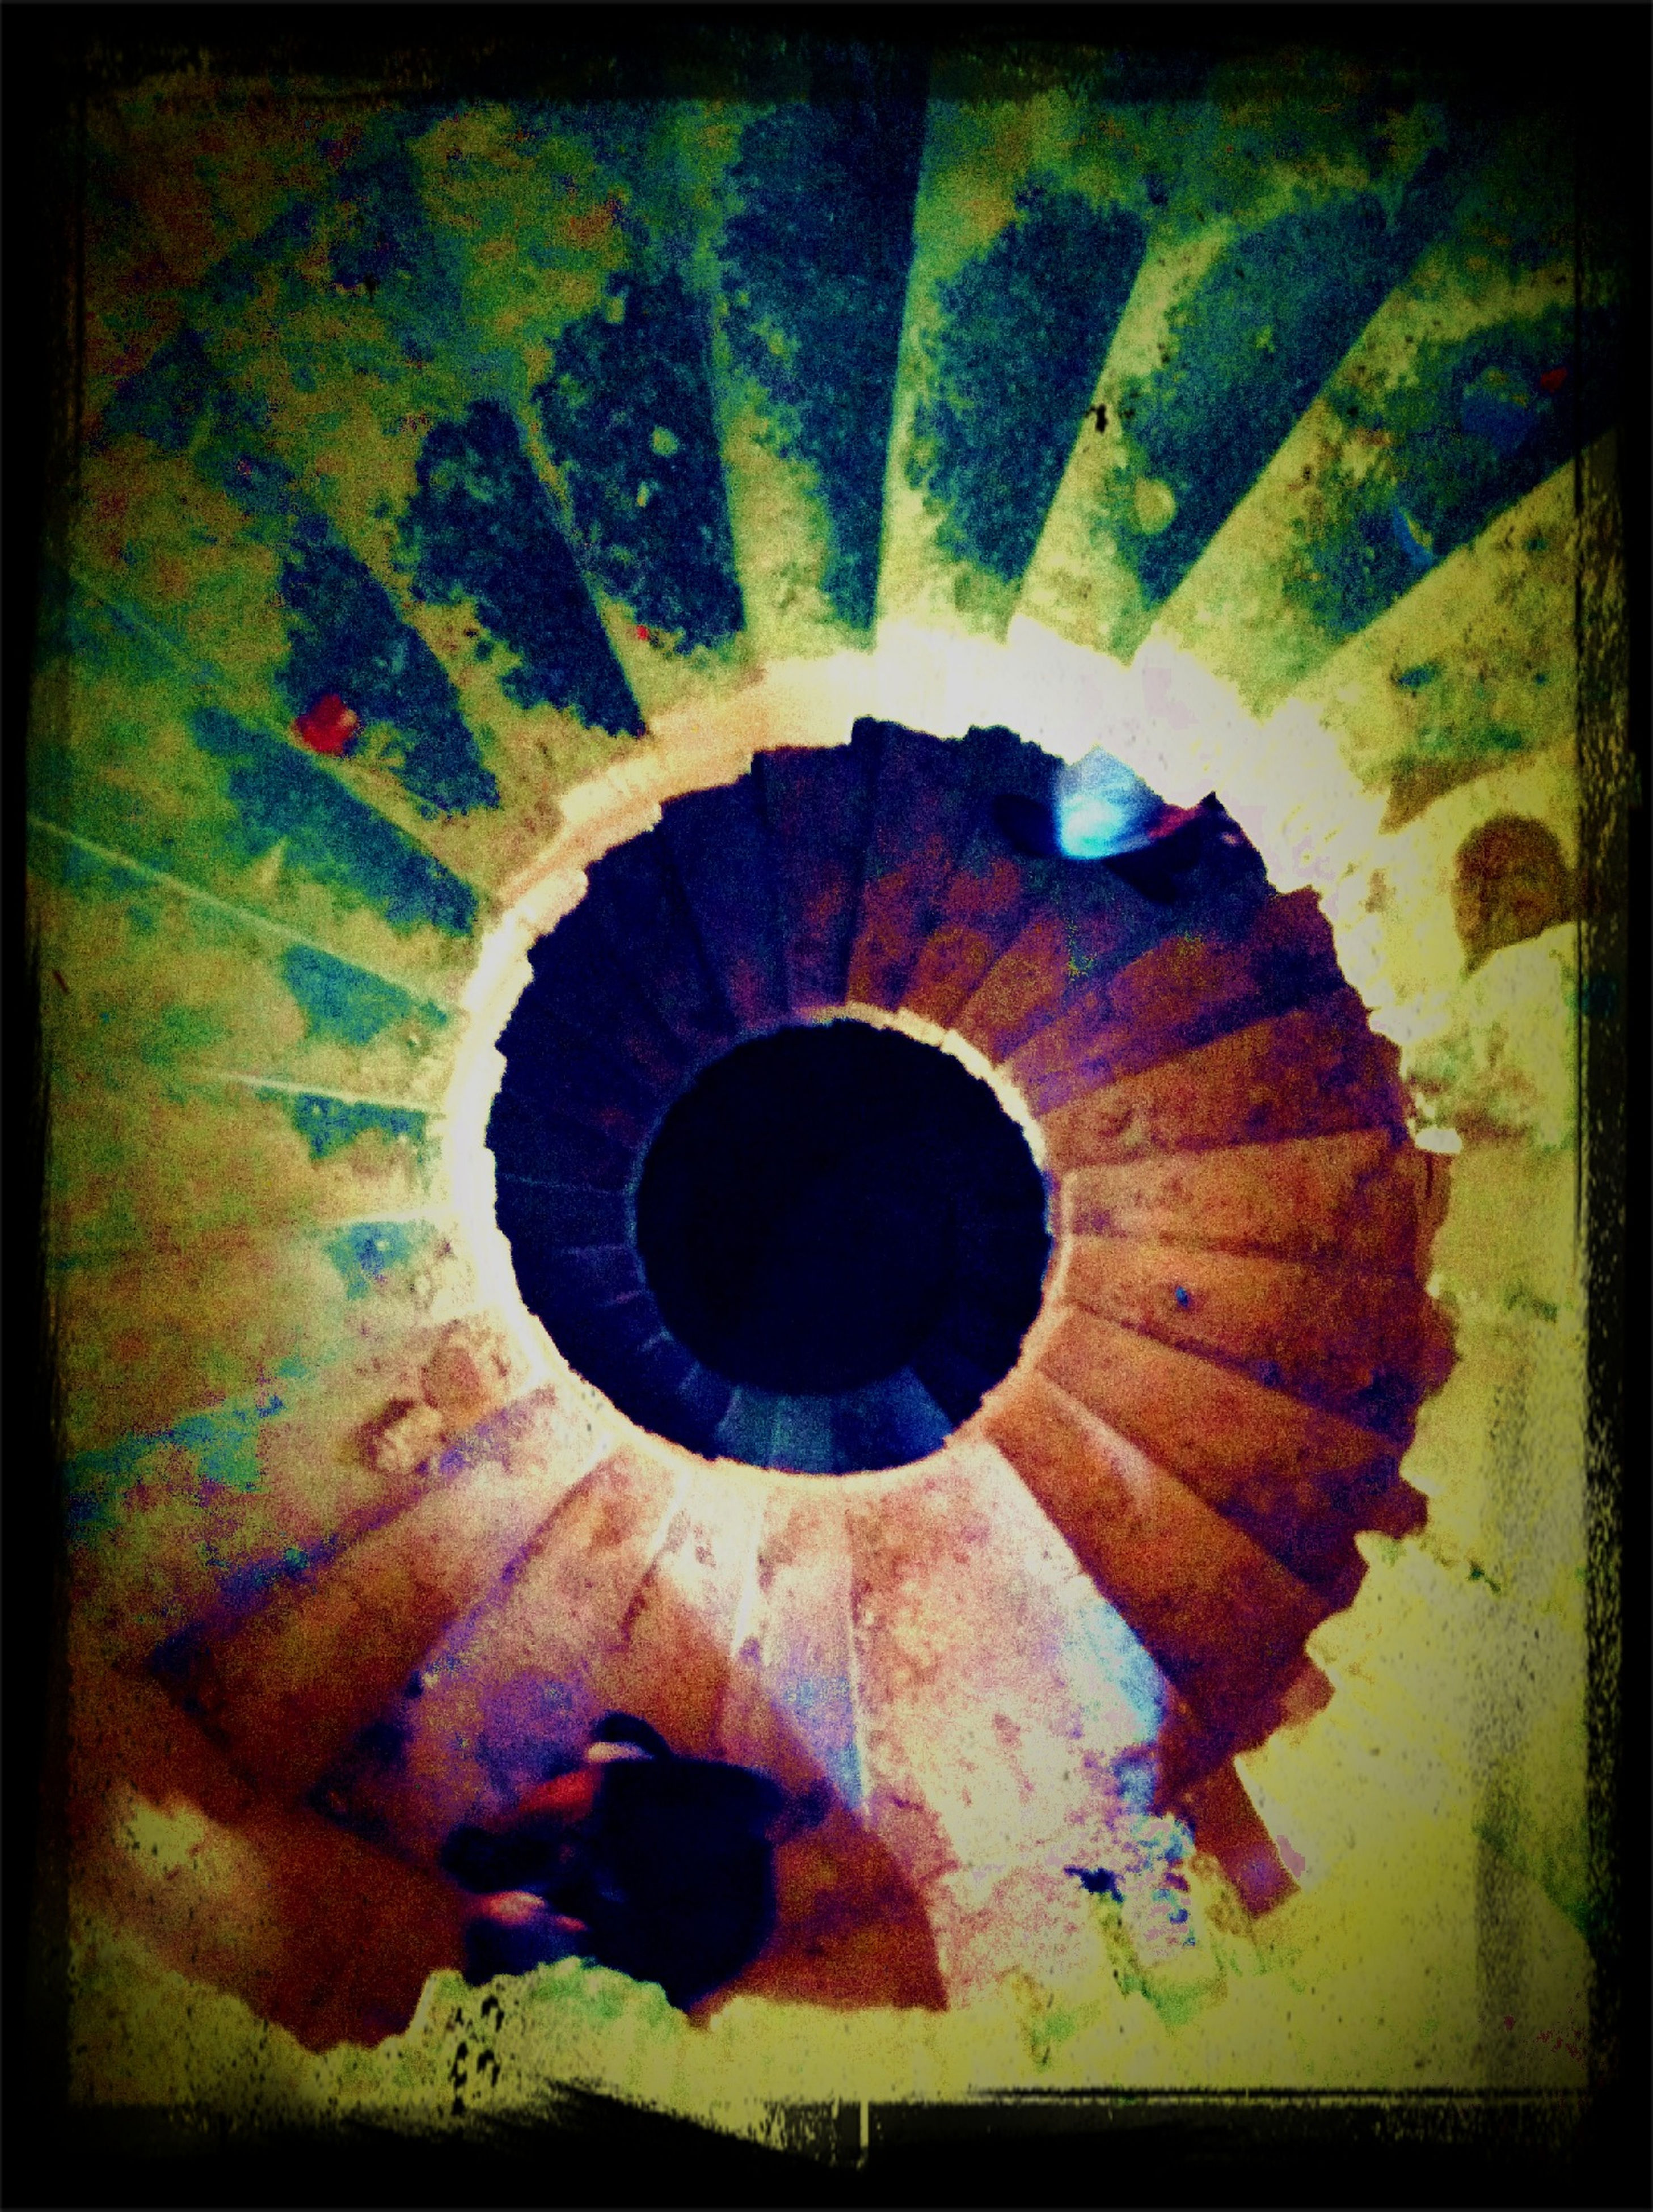 transfer print, indoors, auto post production filter, circle, pattern, built structure, steps, steps and staircases, architecture, high angle view, design, geometric shape, full frame, wall - building feature, staircase, backgrounds, textured, ceiling, spiral staircase, spiral